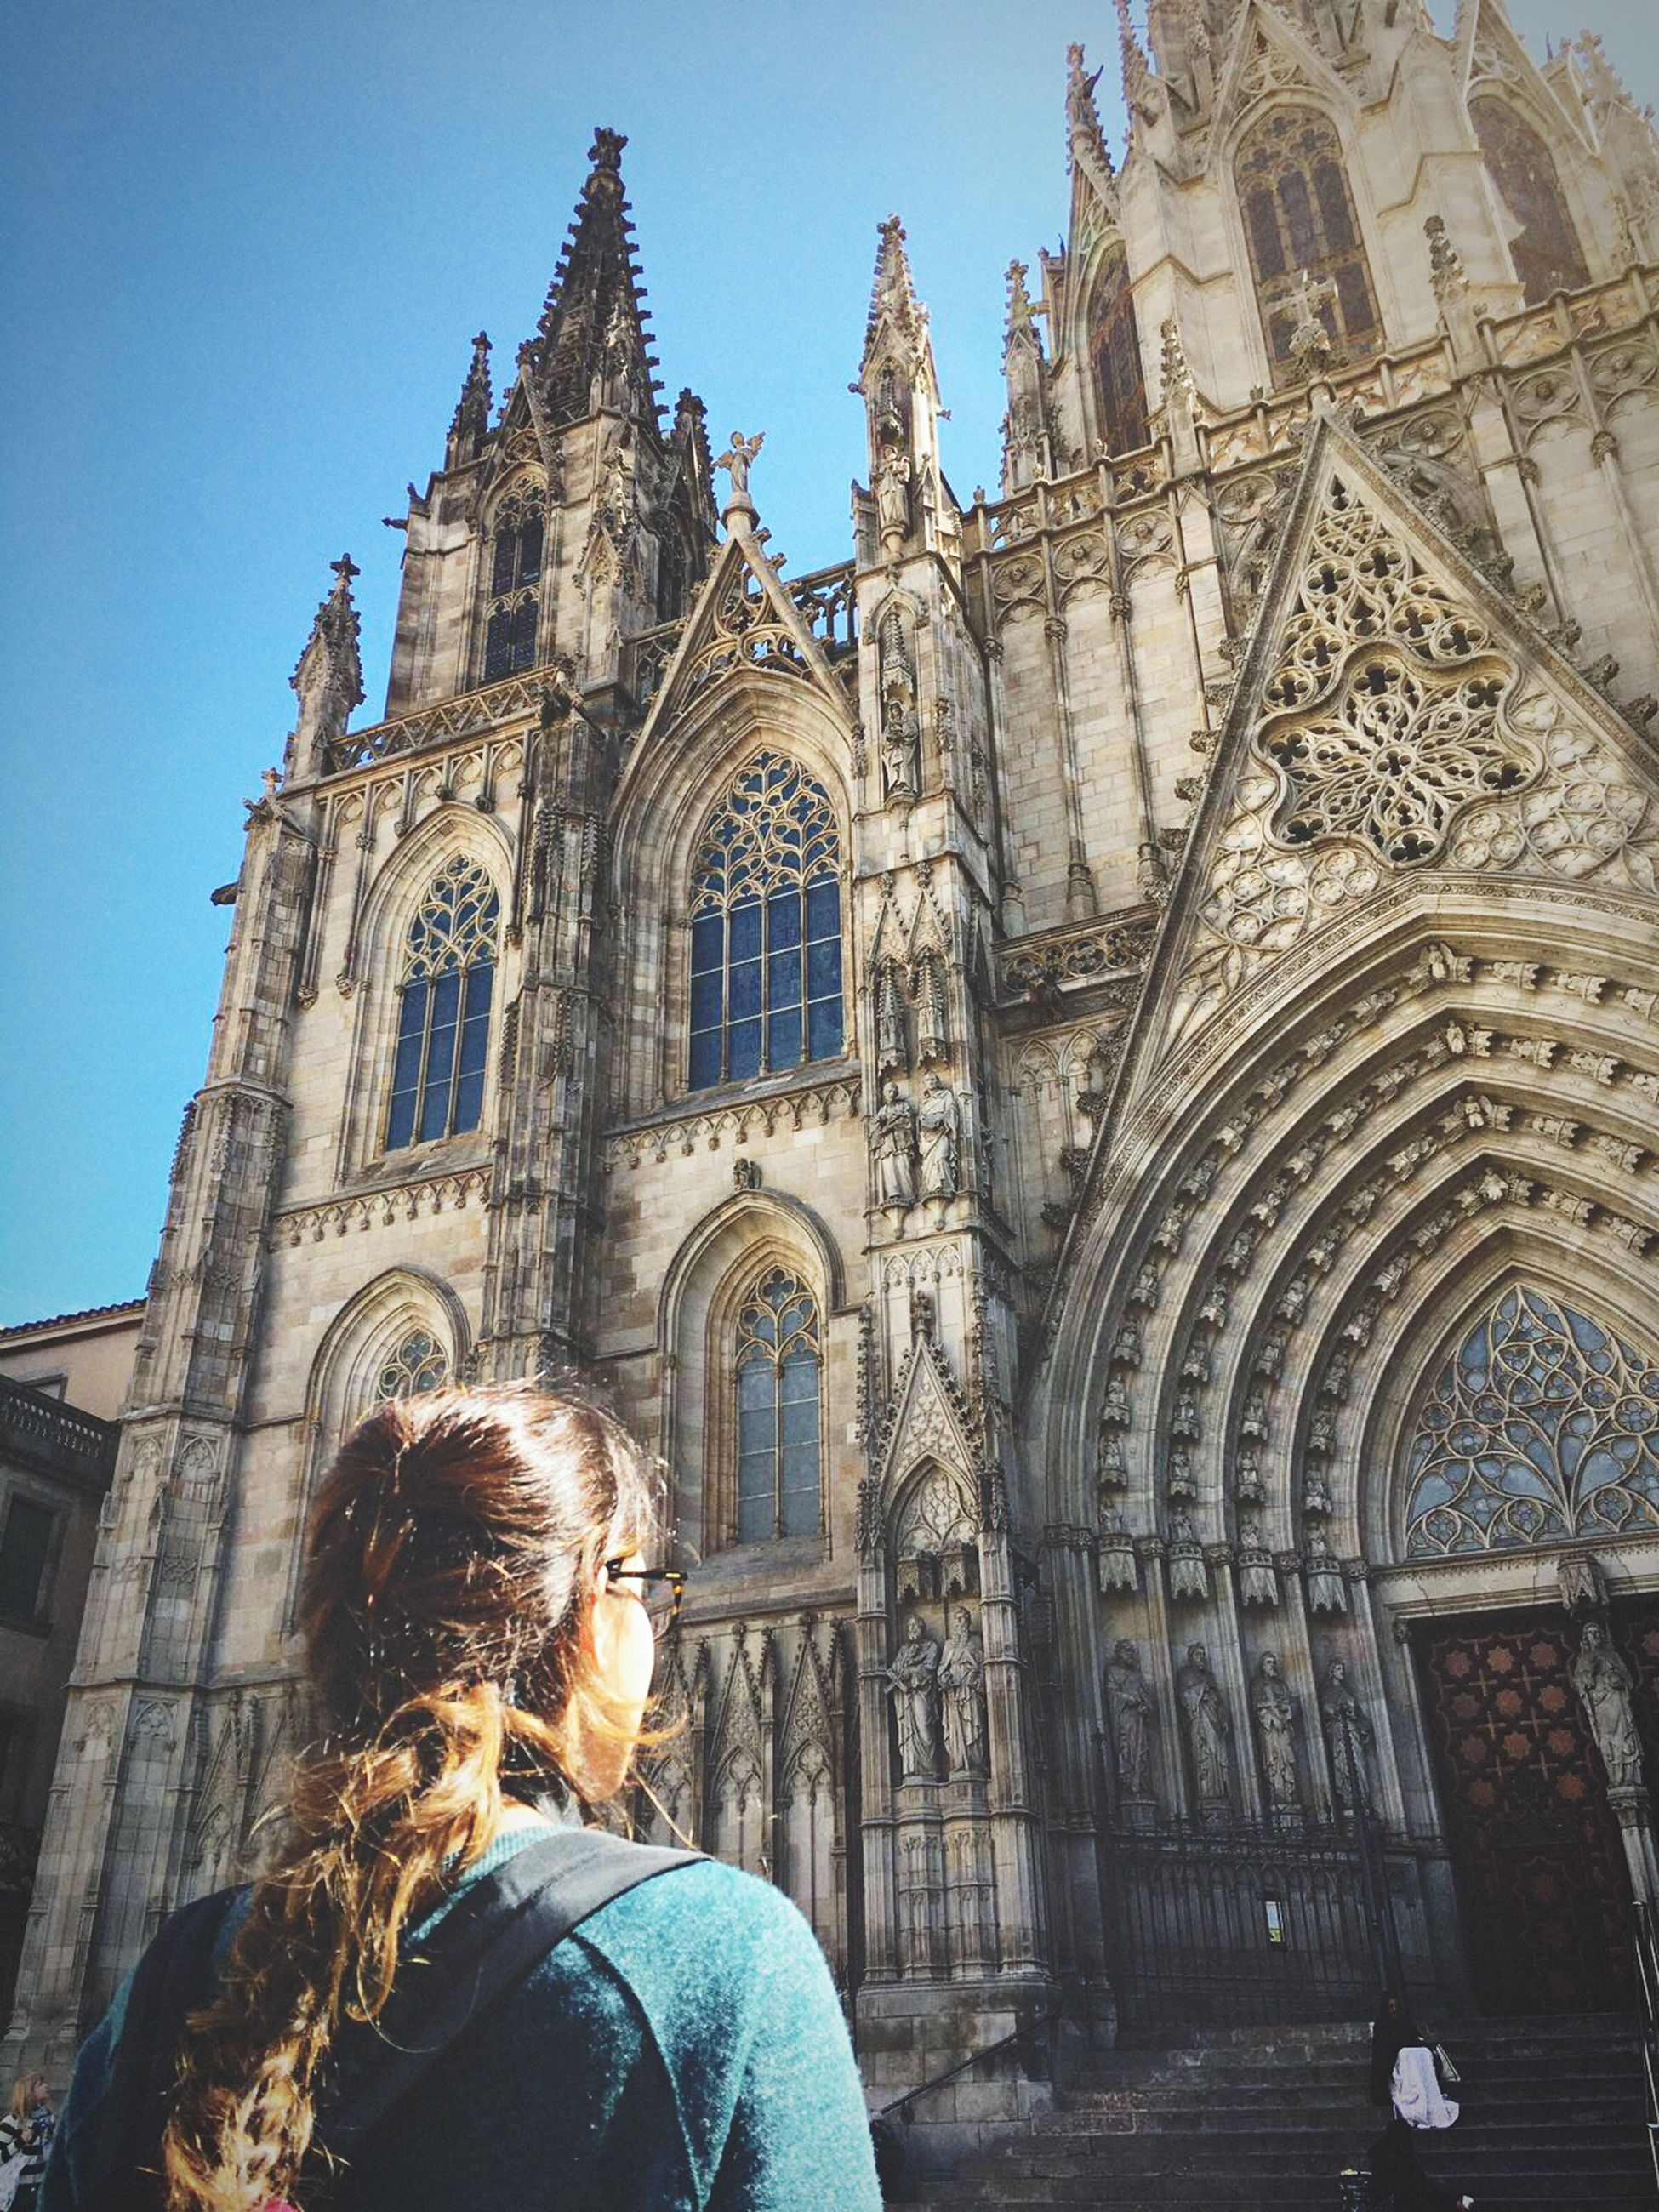 religion, place of worship, spirituality, architecture, real people, building exterior, built structure, leisure activity, one person, day, women, sunlight, history, outdoors, lifestyles, rear view, low angle view, men, standing, sky, people